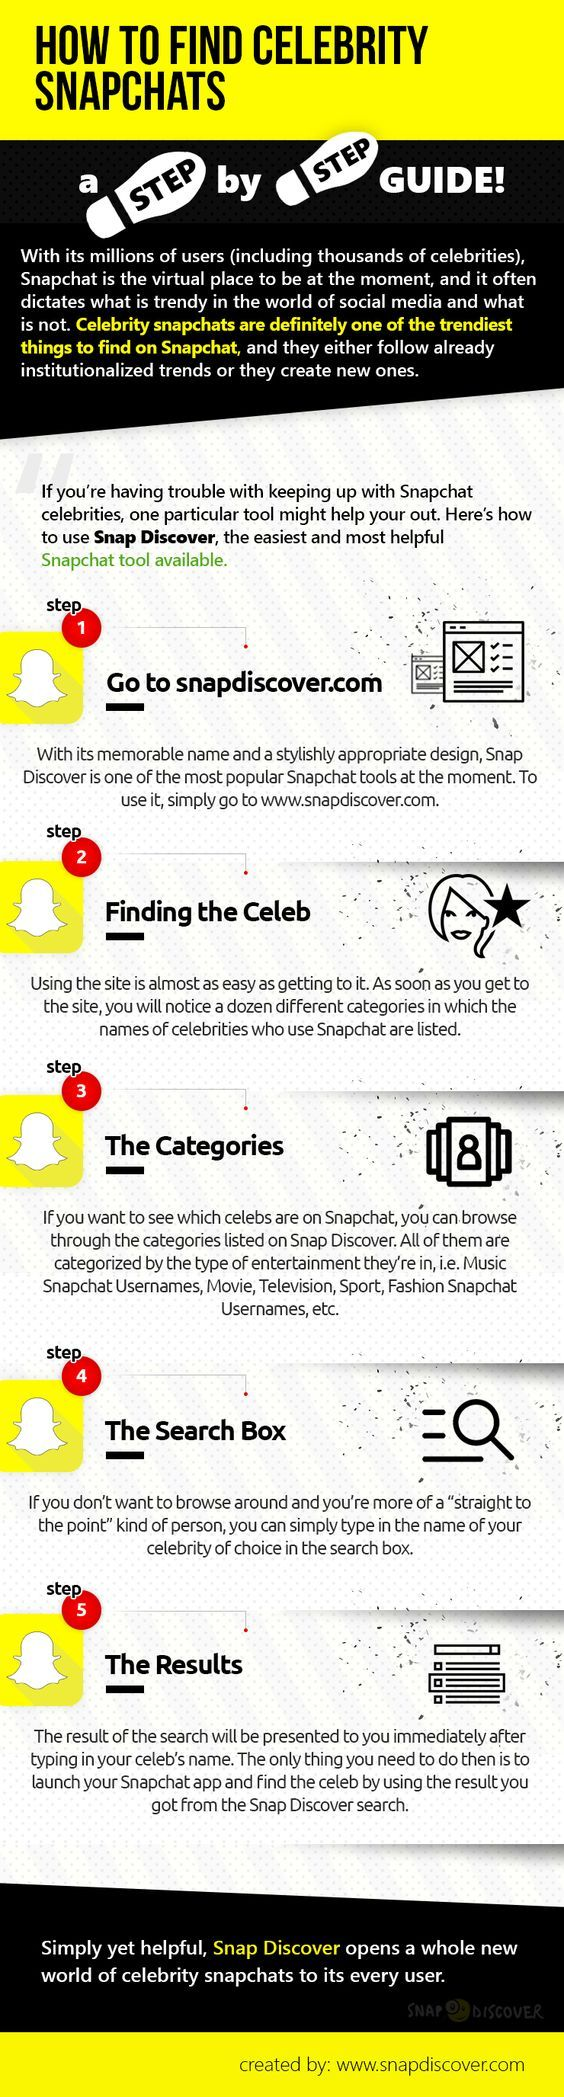 How To Find Celebrity Snapchats (A Step By Step Guide)